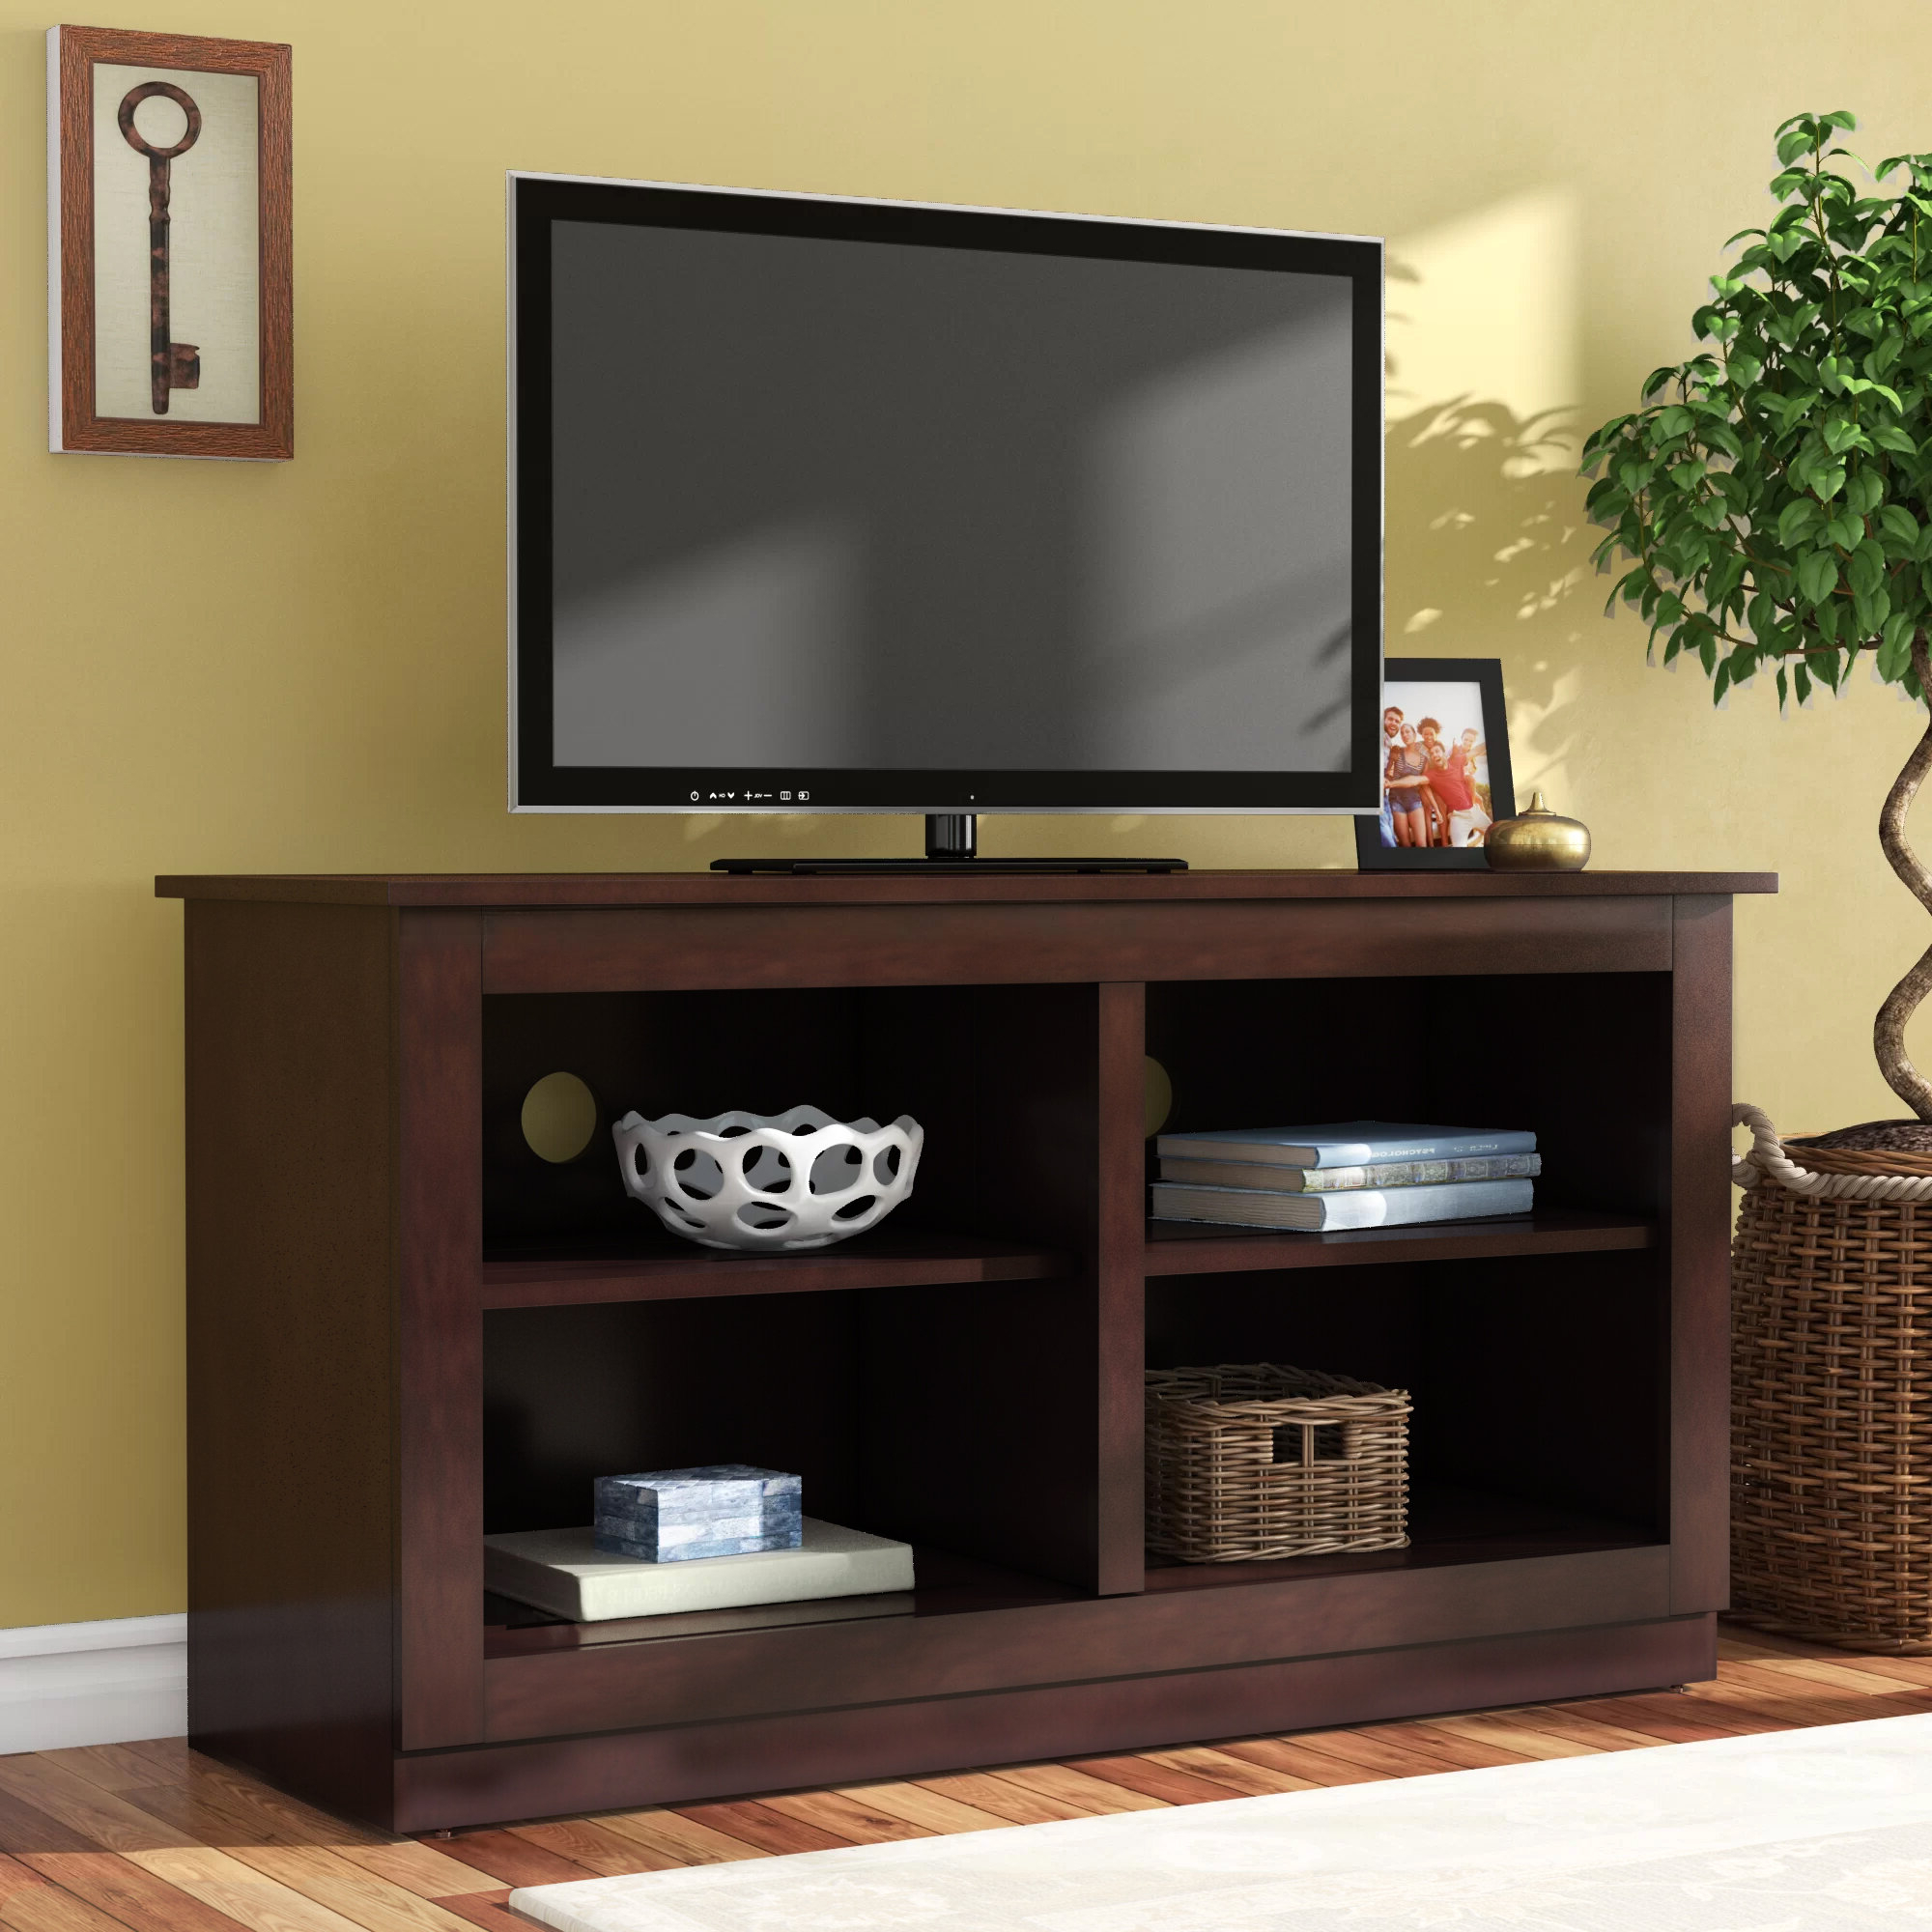 """Andover Mills Xochitl Tv Stand For Tvs Up To 42"""" Intended For Ericka Tv Stands For Tvs Up To 42"""" (View 1 of 20)"""